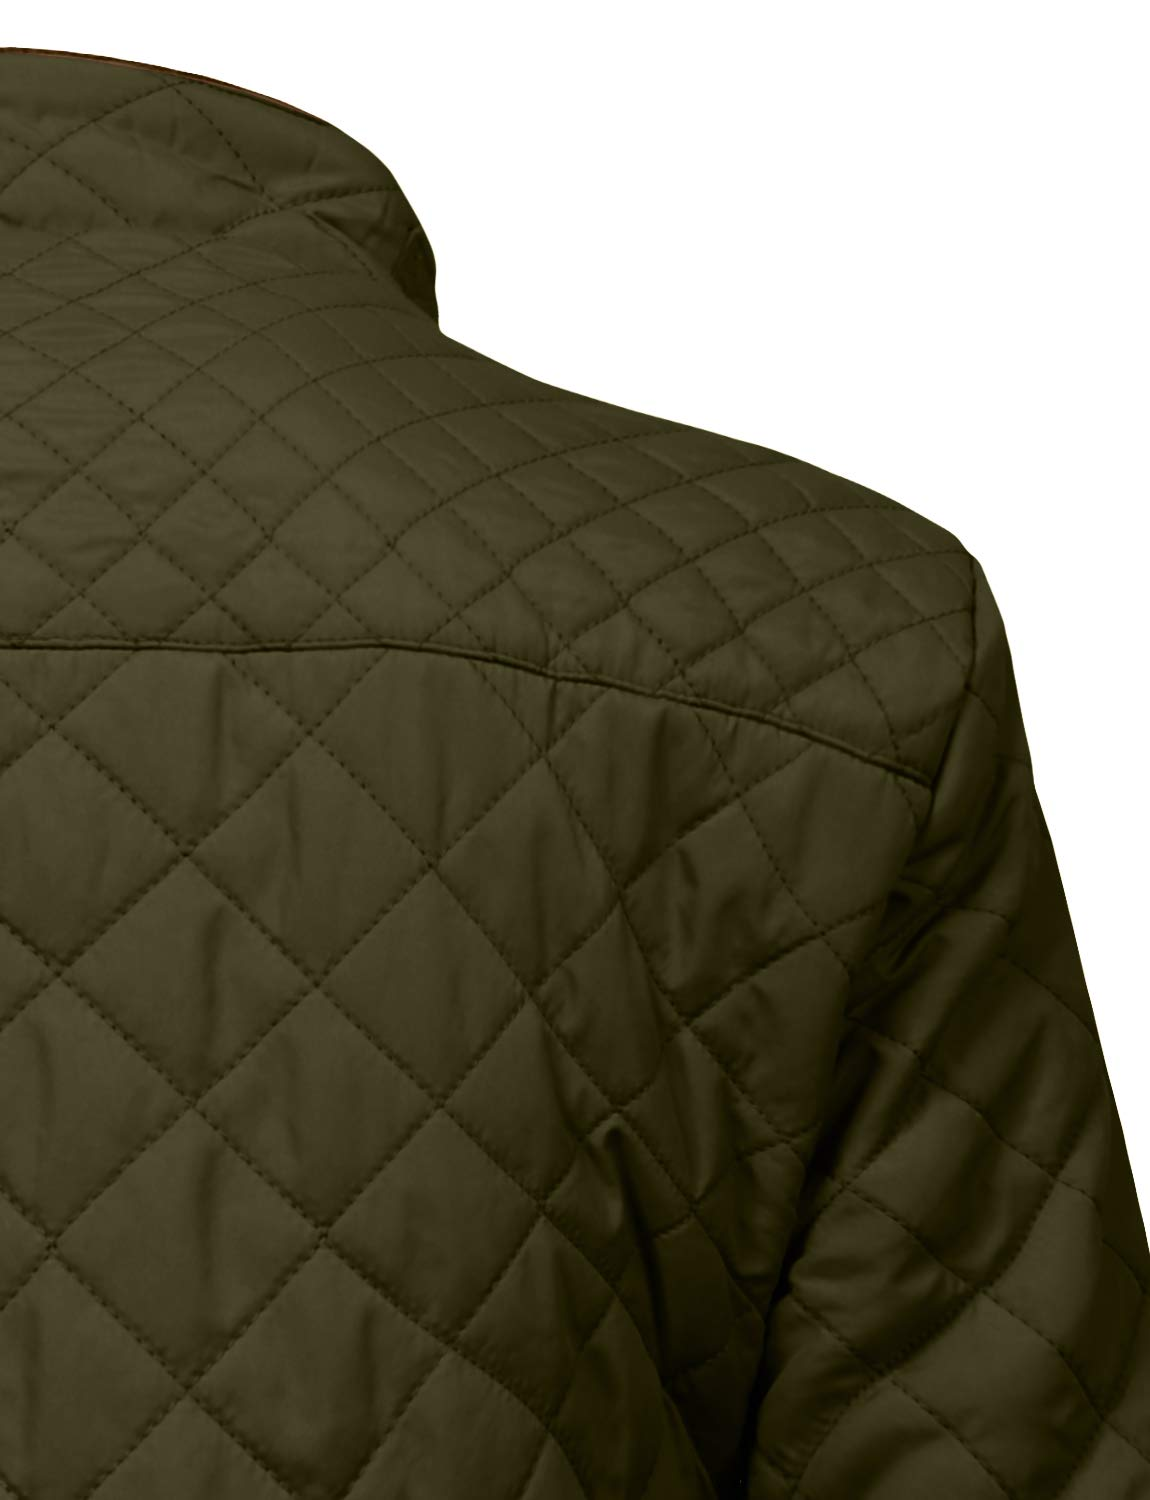 J. LOVNY Womens Lightweight Quilted Warm Zip Jacket/Vest with Pocket Details by J. LOVNY (Image #6)